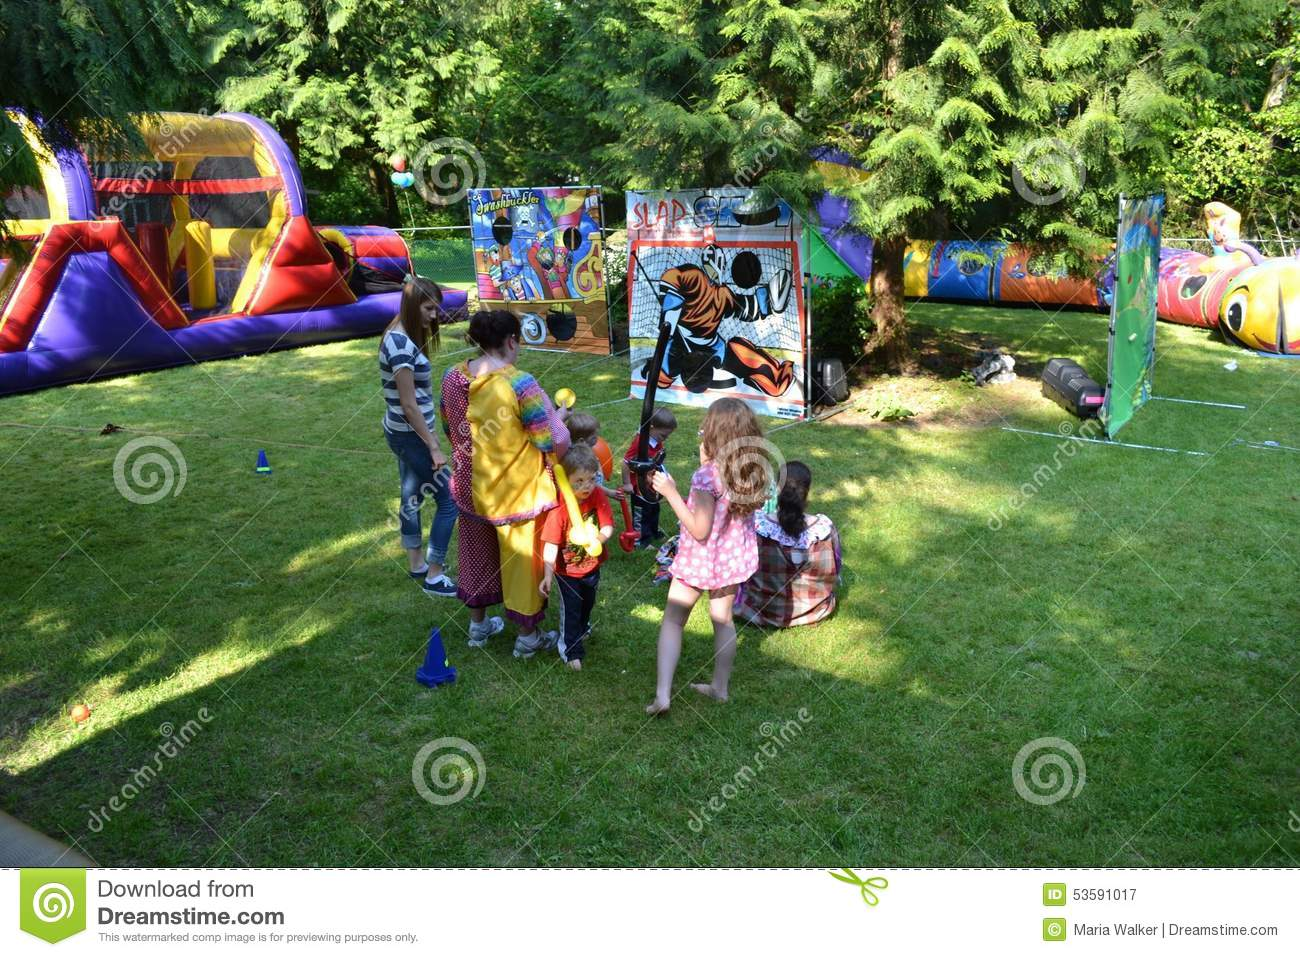 Birthday Party Games And Gather Around For Cotton Candy Popcorn Hotdogs Family Enjoys A Backyard Carnival Walking Past The Snail With